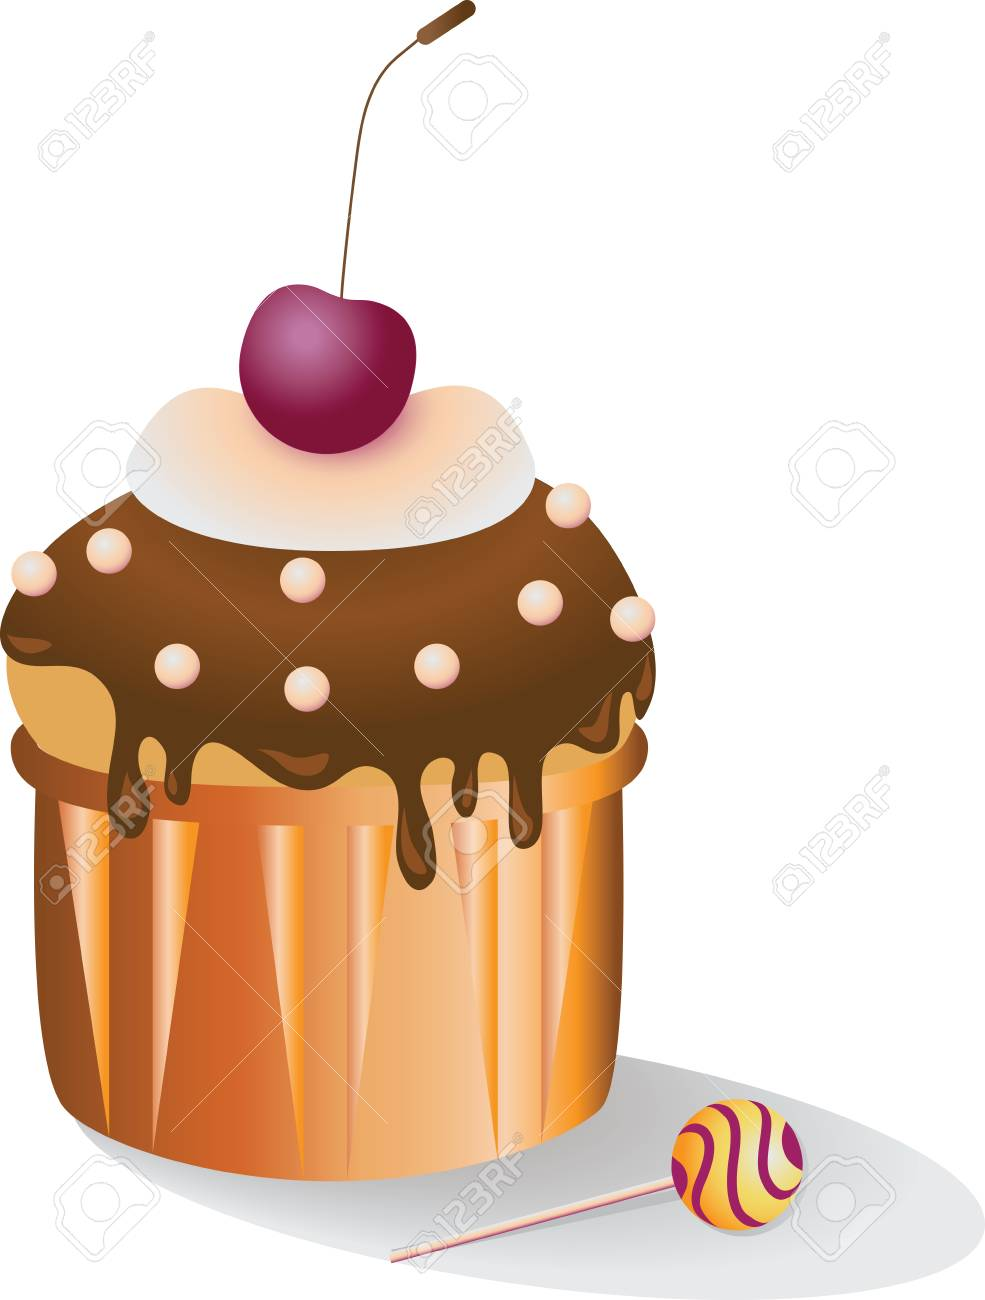 cupcake with a cherry vector image of dessert for leaflets